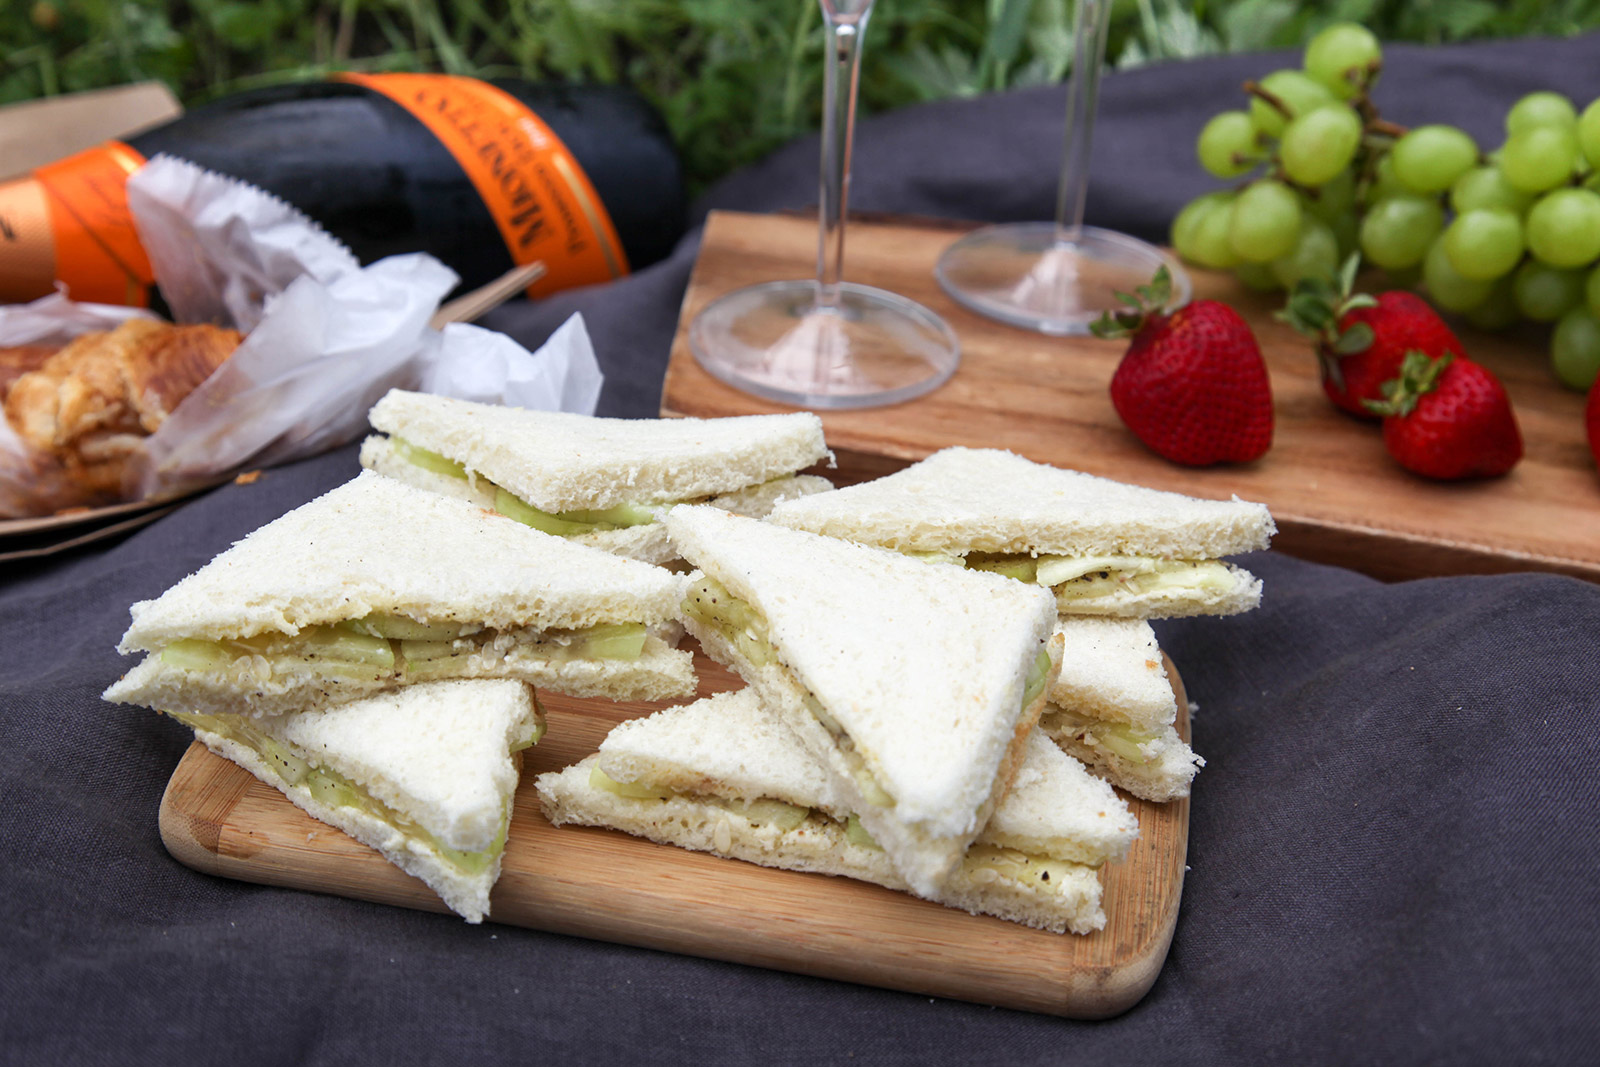 Cucumber Sandwiches are perfect for Picnics